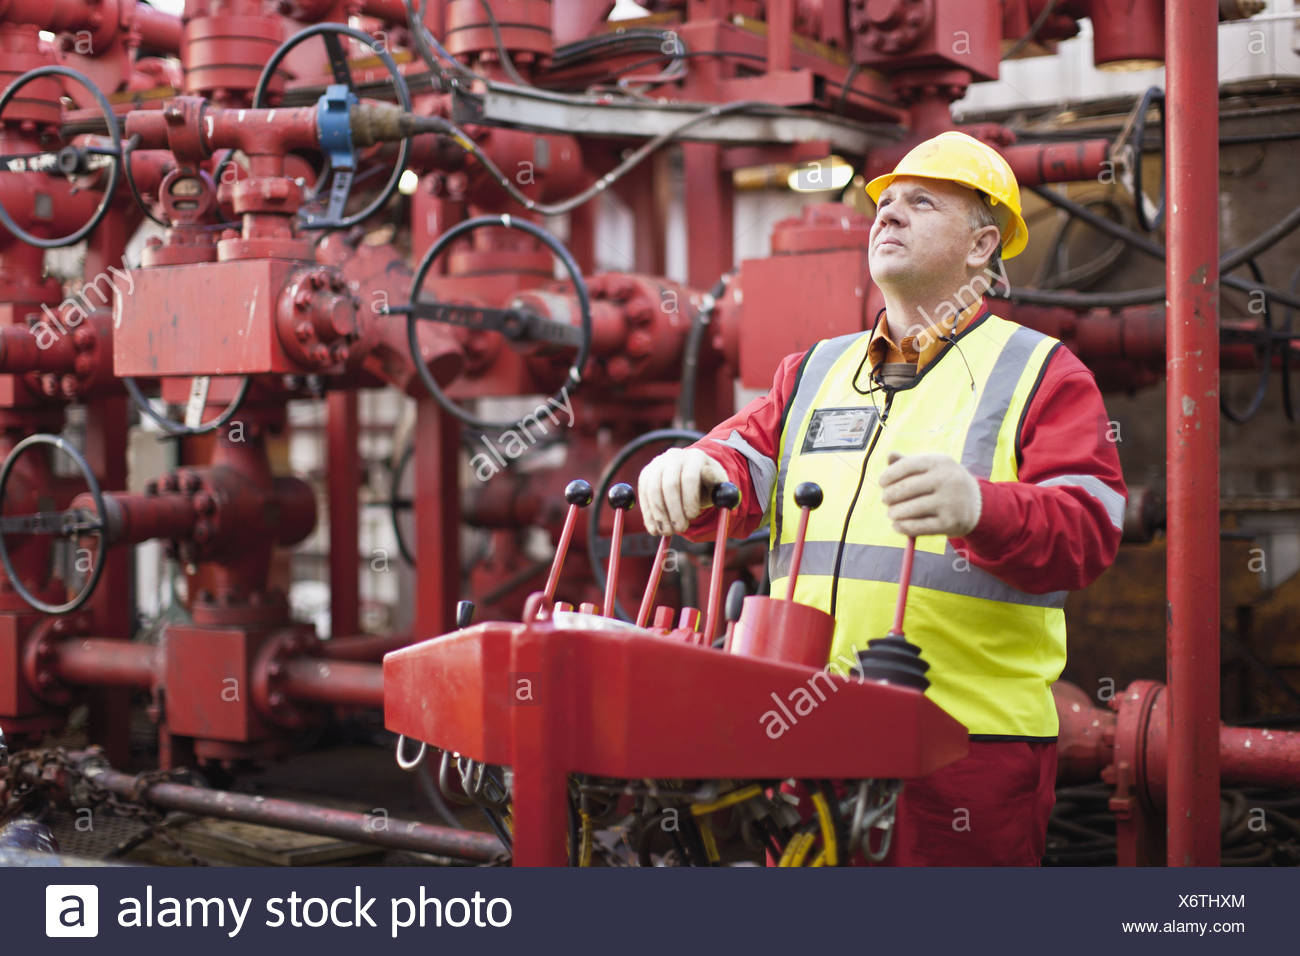 Worker operating machinery on oil rig Stock Photo: 279594748 - Alamy